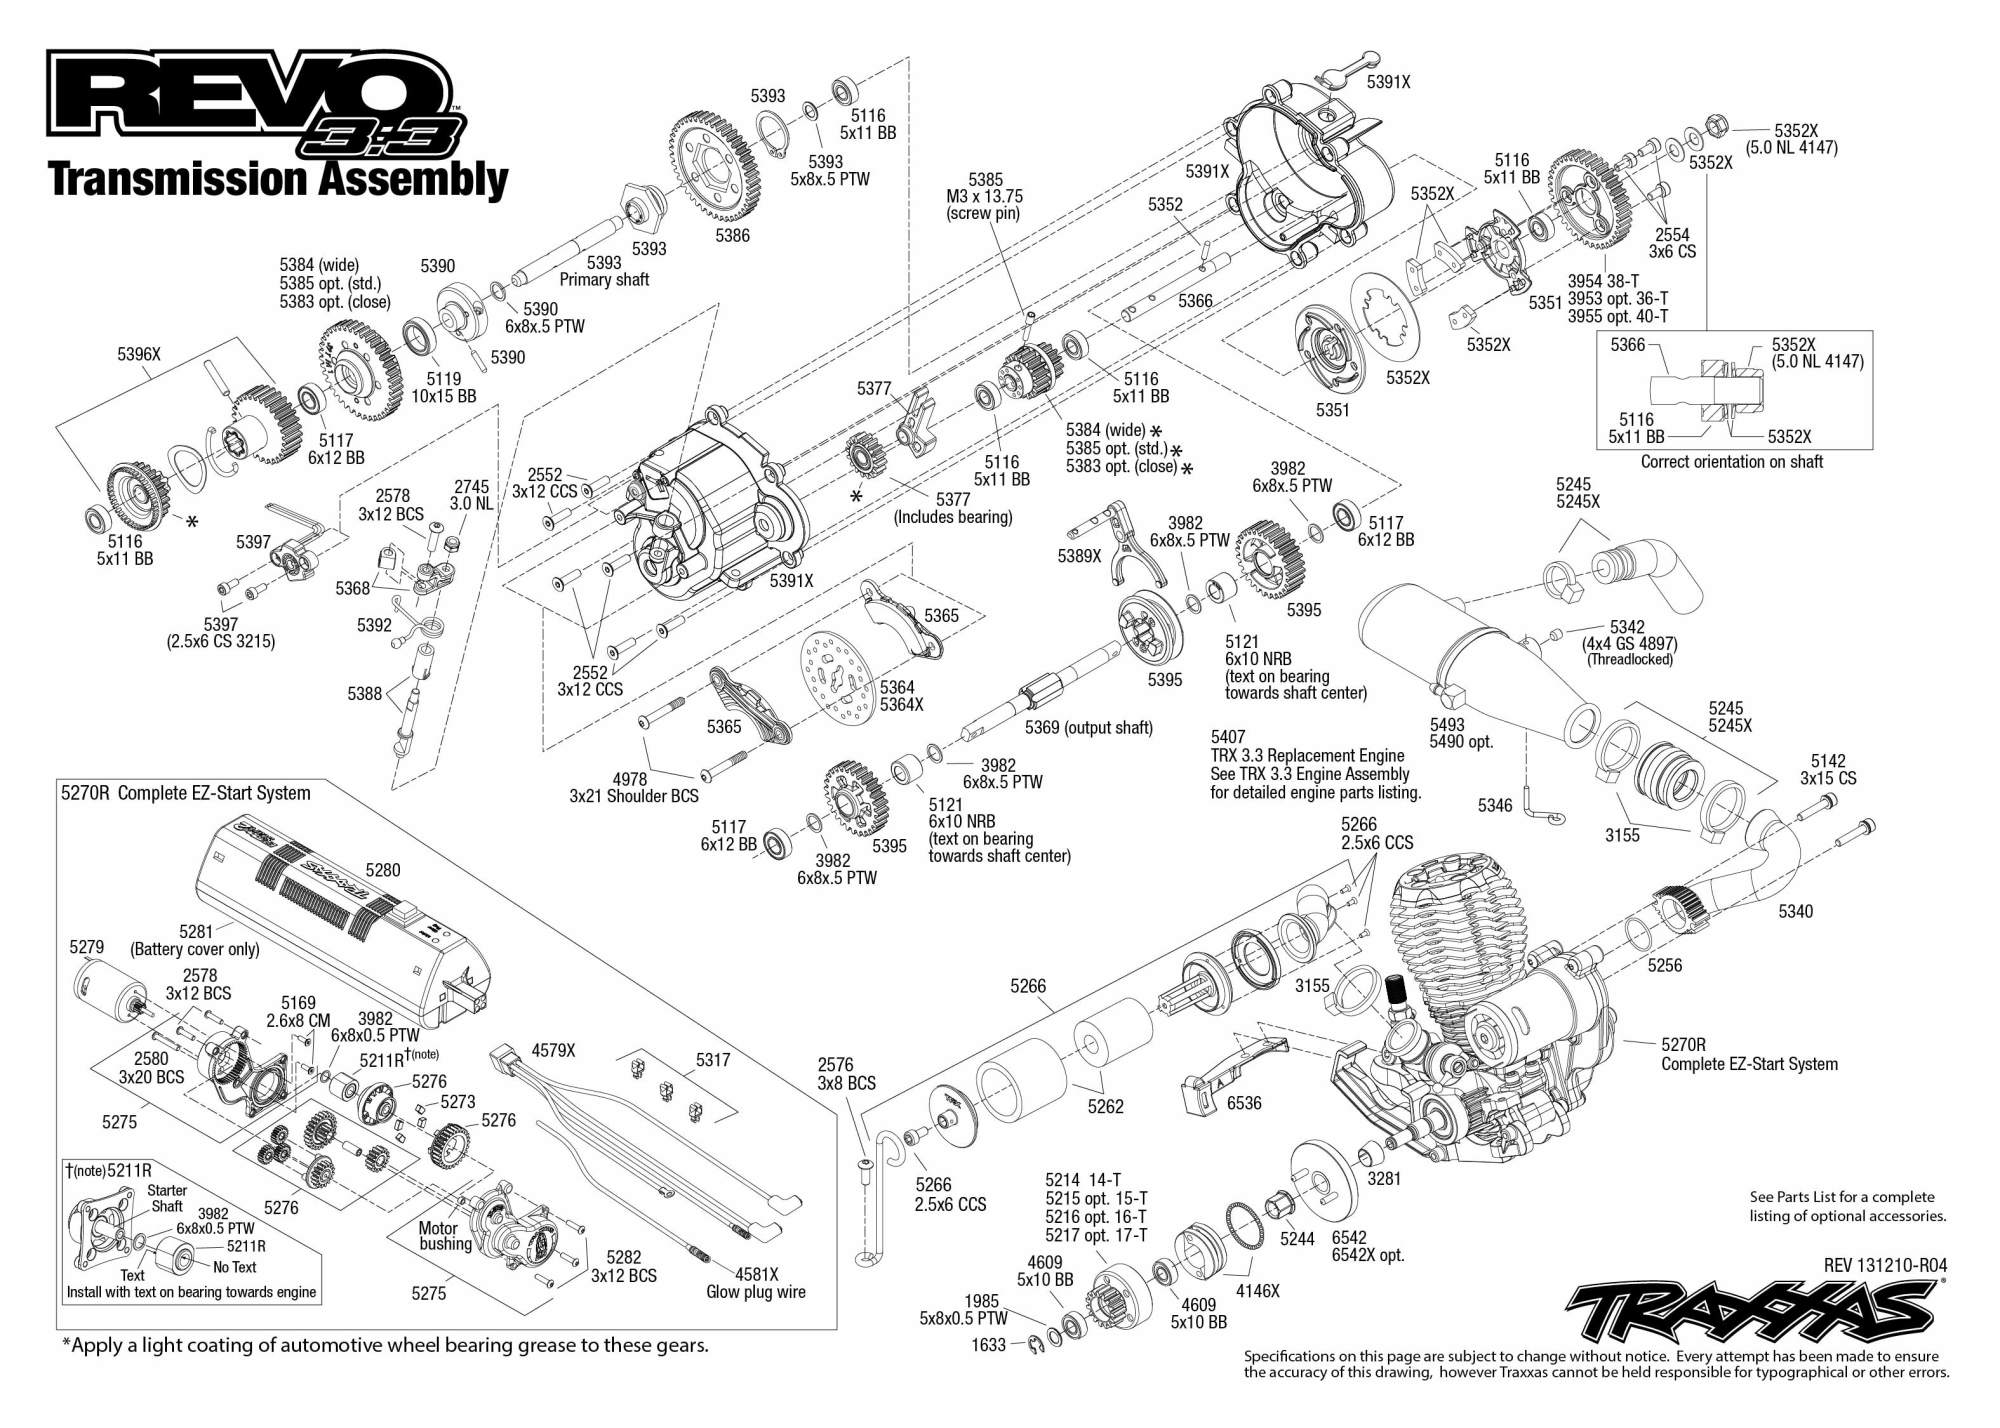 hight resolution of 5309 transmission exploded view revo 3 3 w tqi 2 4ghz docking rh traxxas com ez start system traxxas easy start system